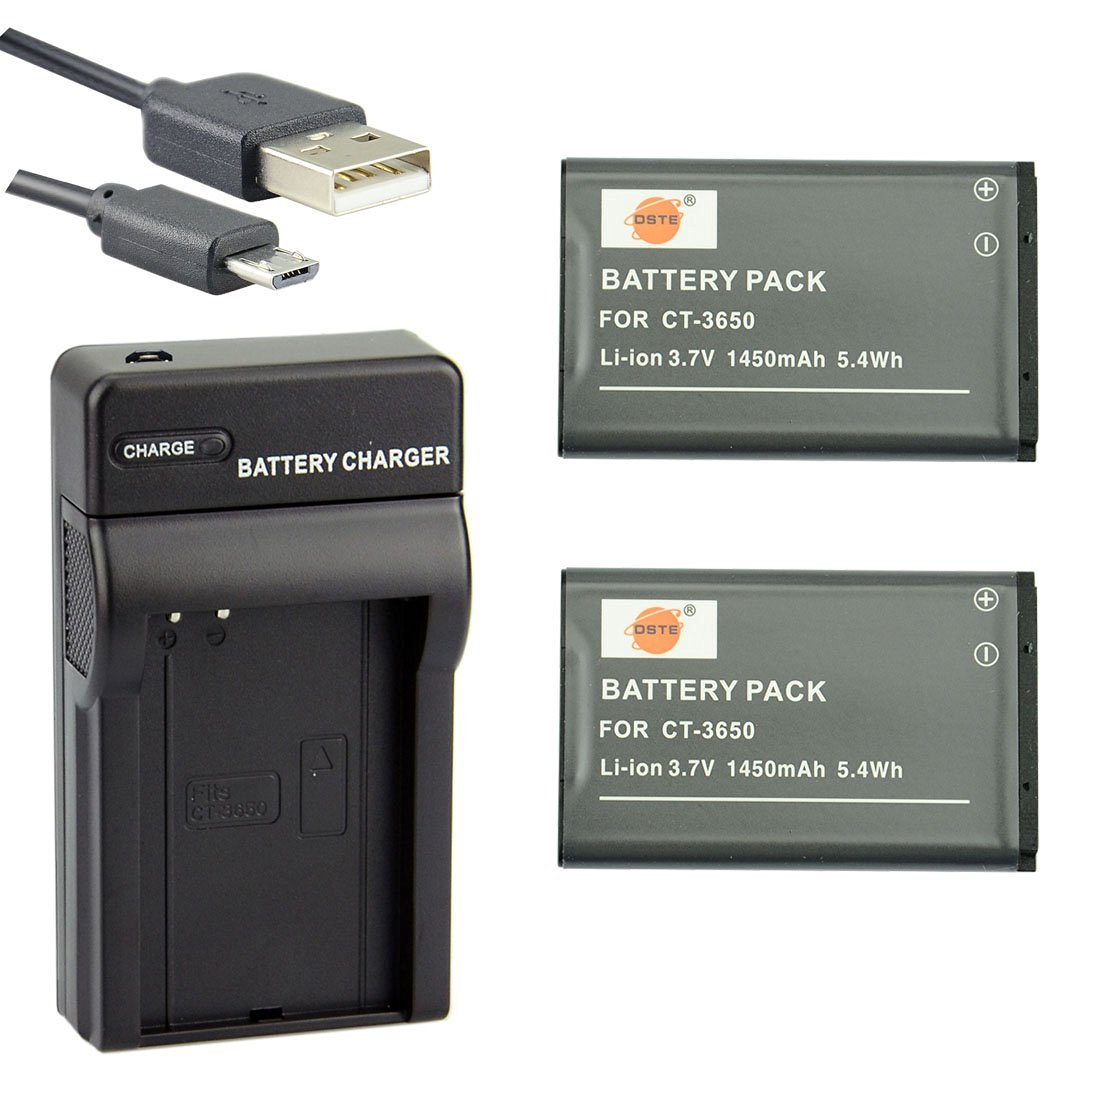 DSTE CT-3650 Li-ion Battery (2-Pack) and Micro USB Charger Suit for Contour GPS HD 1080P